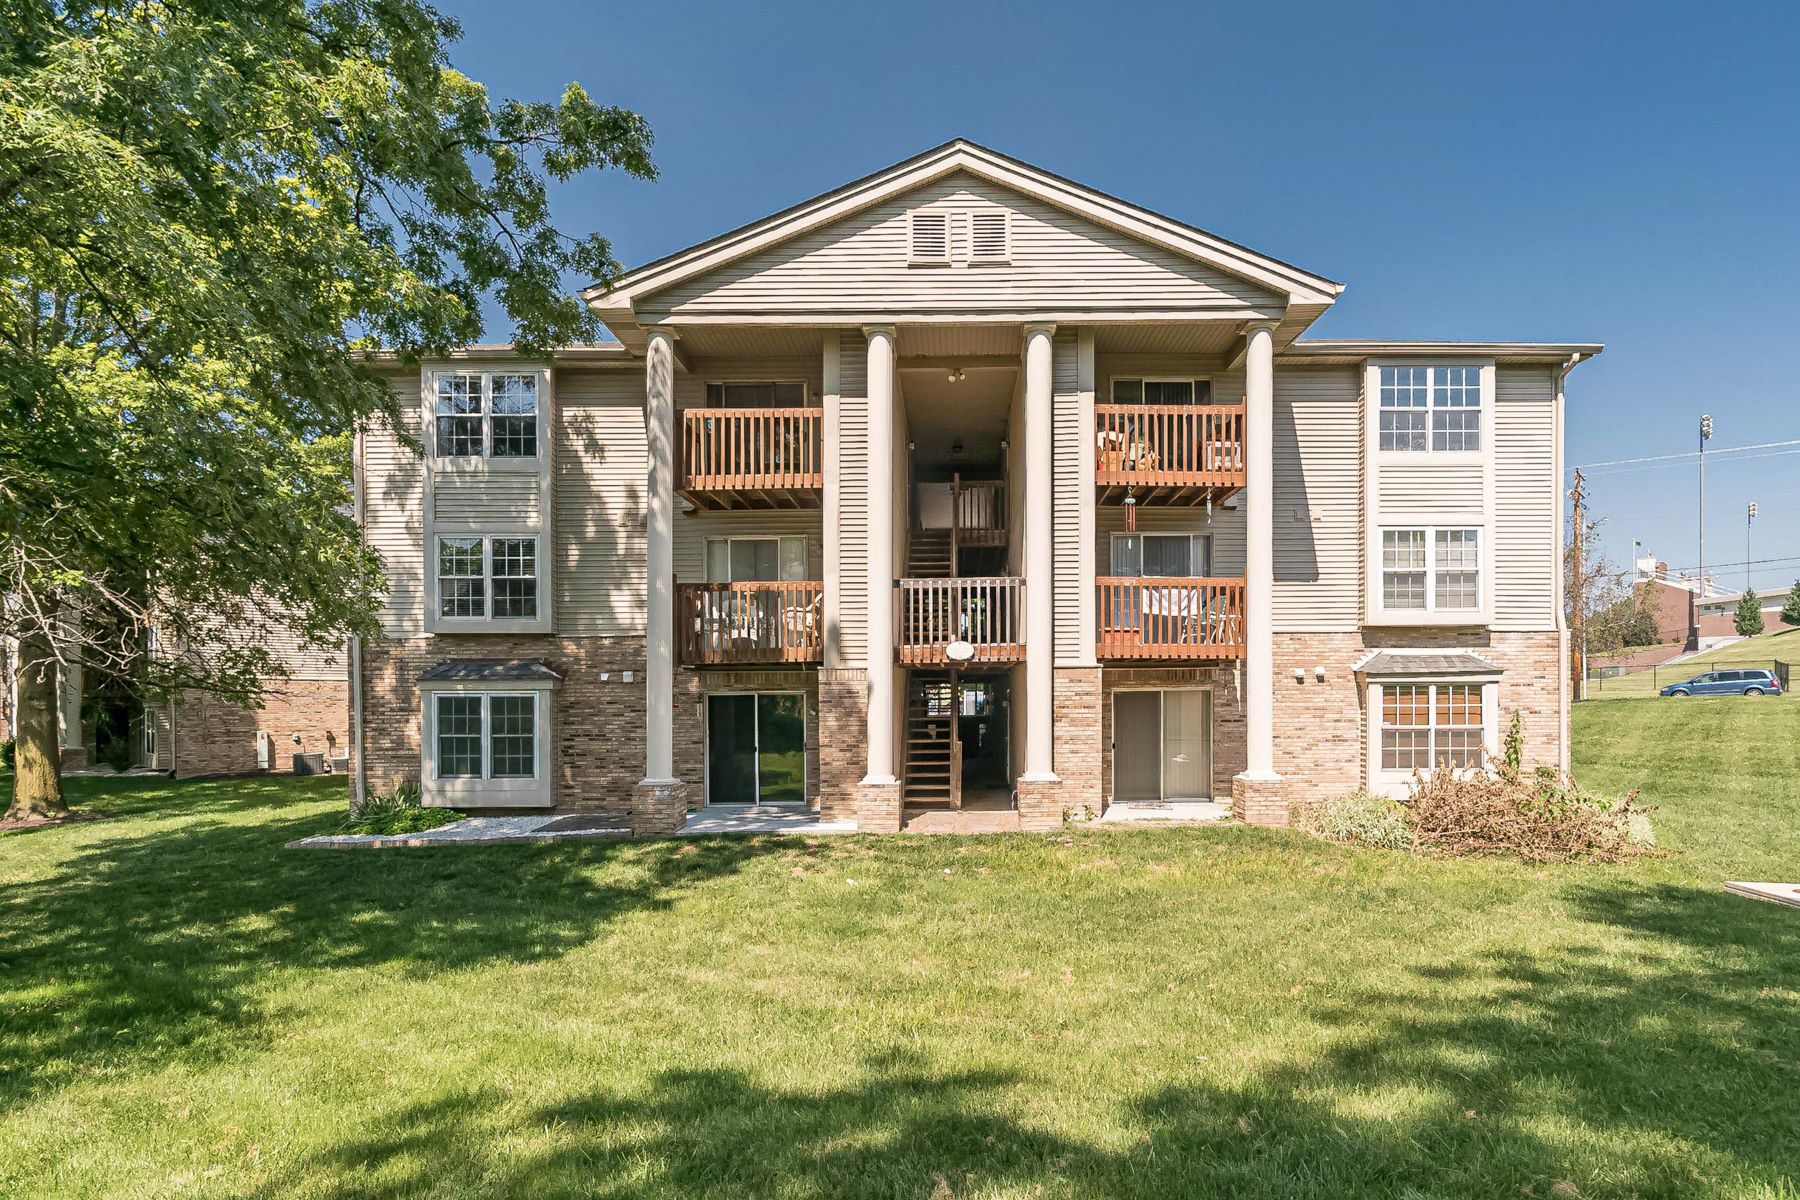 Condominiums for Sale at Super Cute and Updated Ground Floor Condo! 2560 Creve Coeur Mill Road, #1 Maryland Heights, Missouri 63043 United States